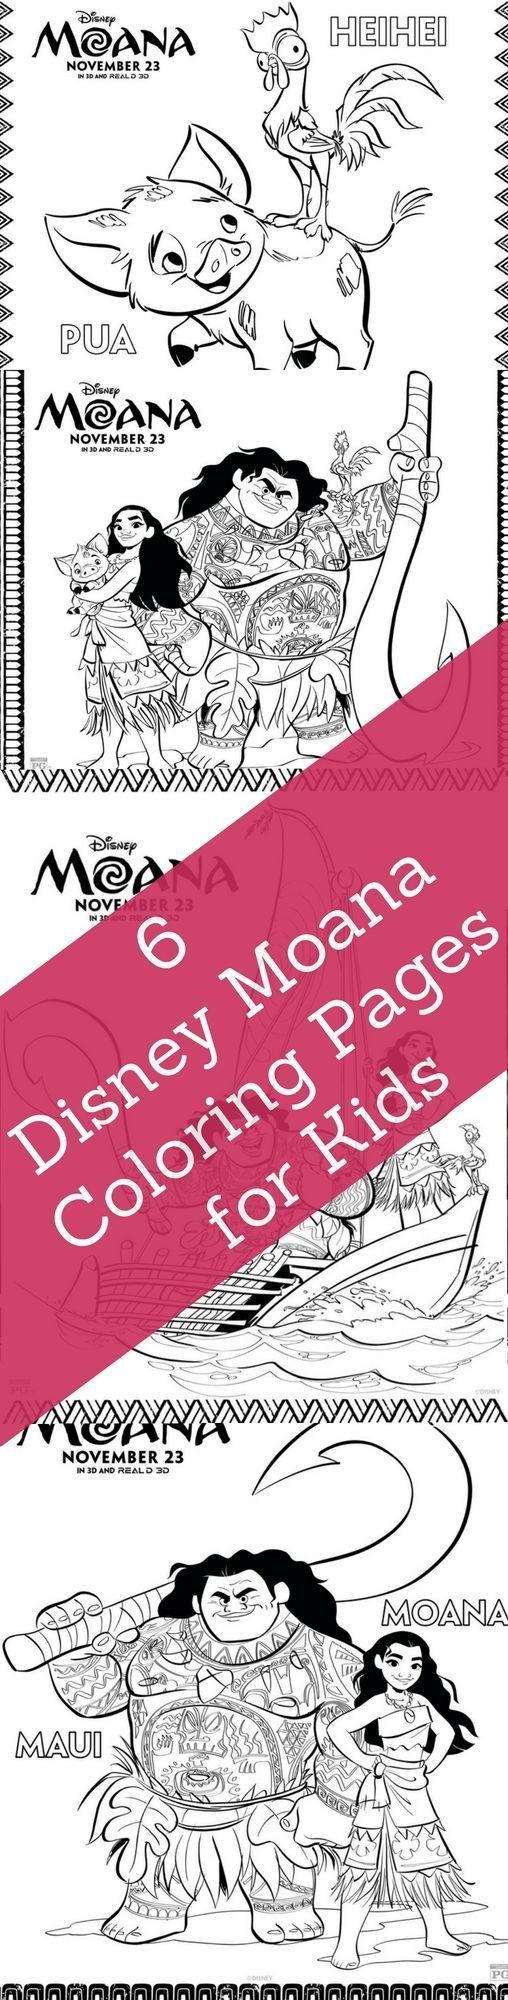 400 best printouts images on pinterest coloring sheets coloring